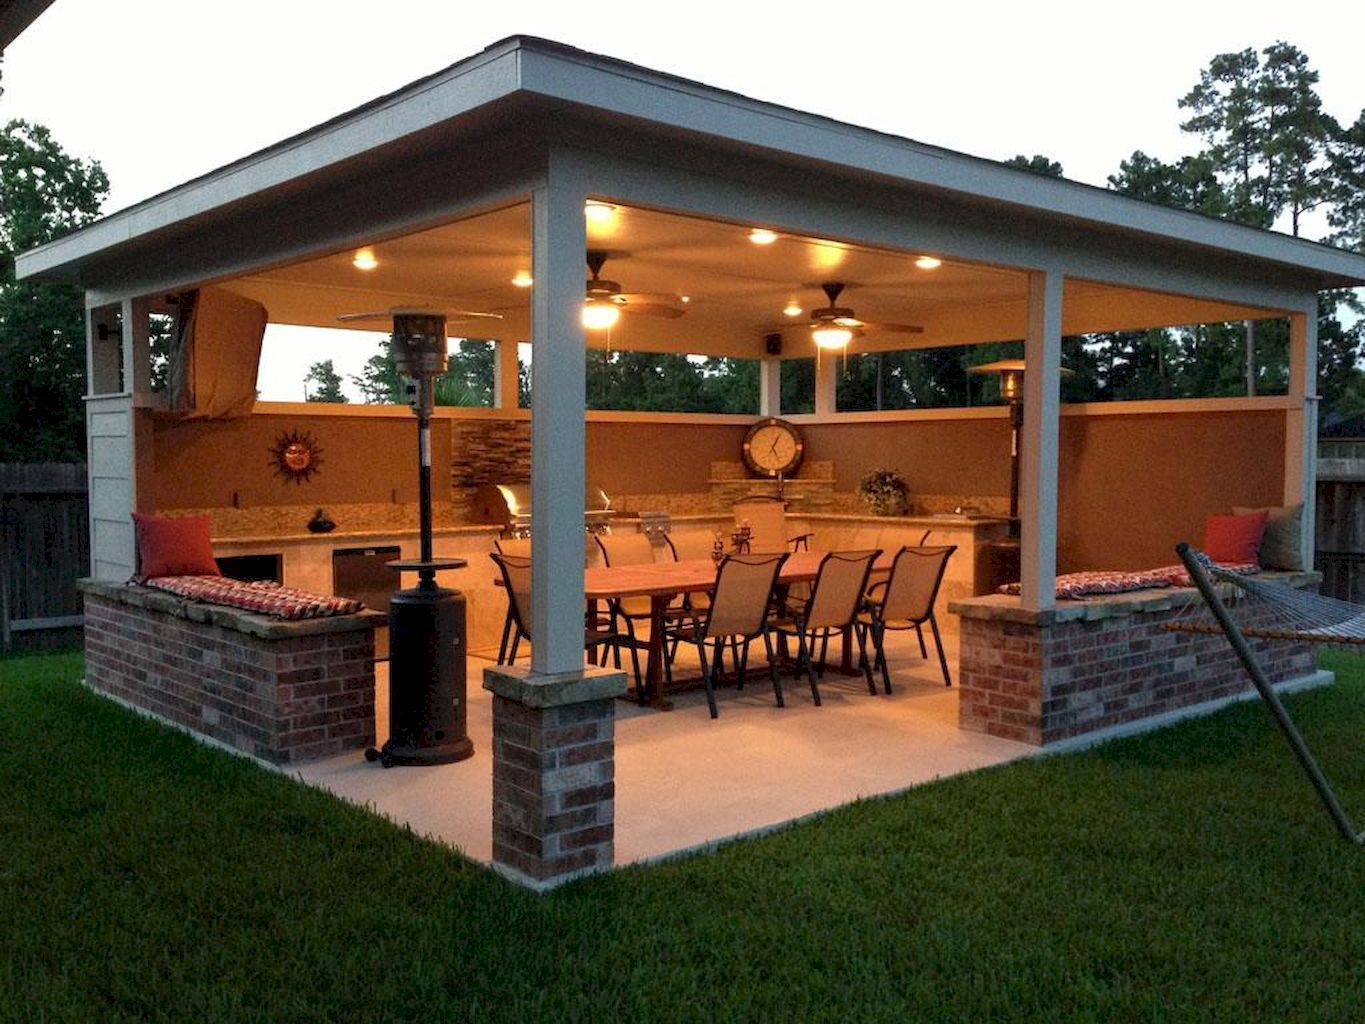 Insulated Roof Pergola with Lighting